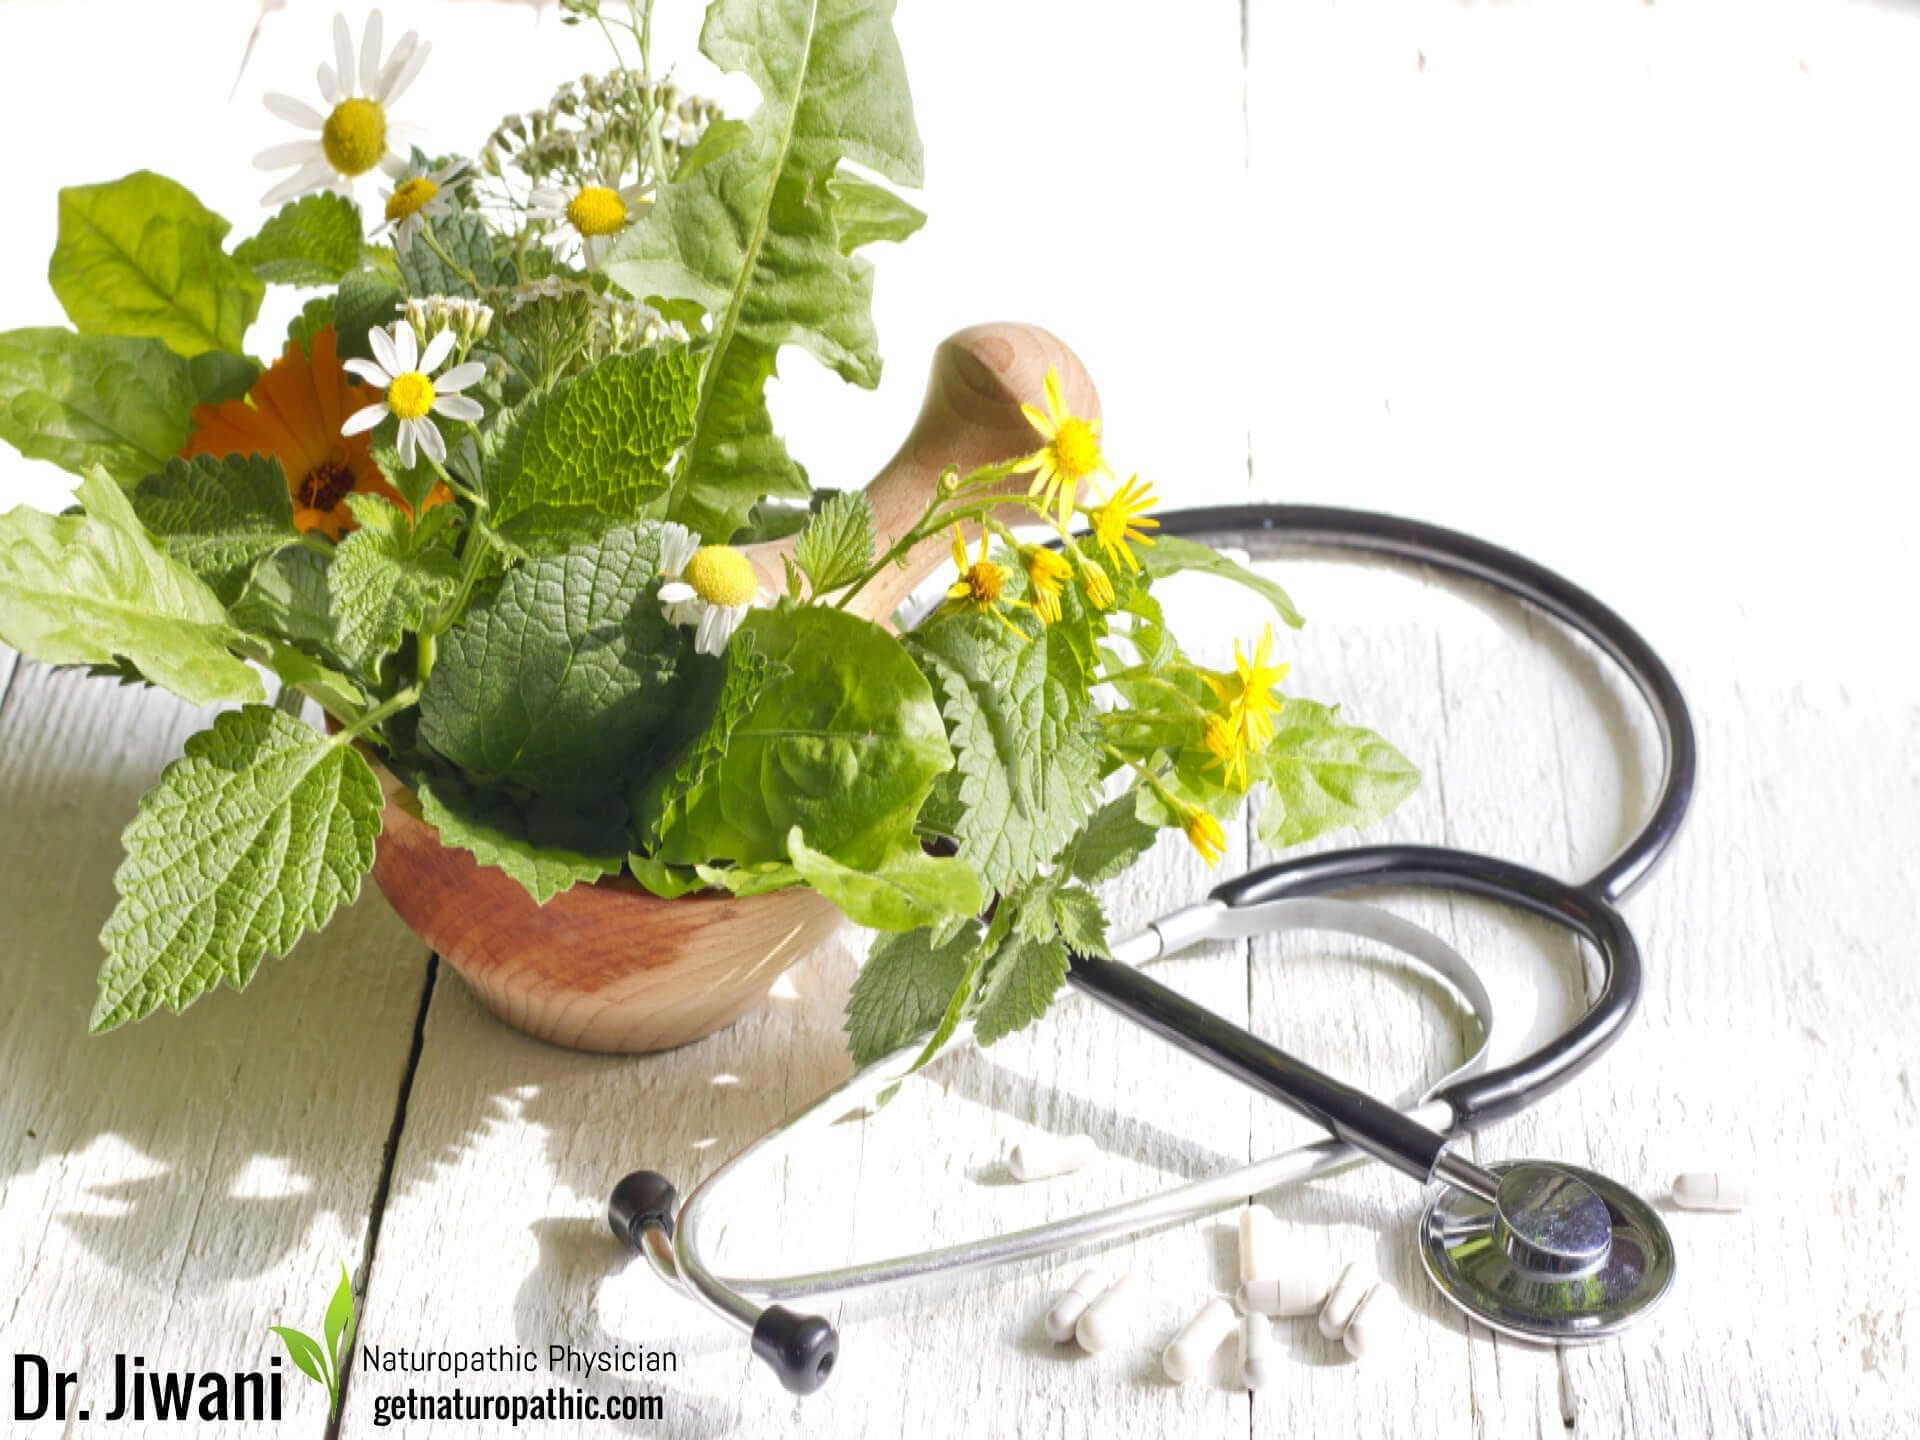 GetNaturopathic Naturopathic Medicine: Is It Right for You? Dr. Jiwani